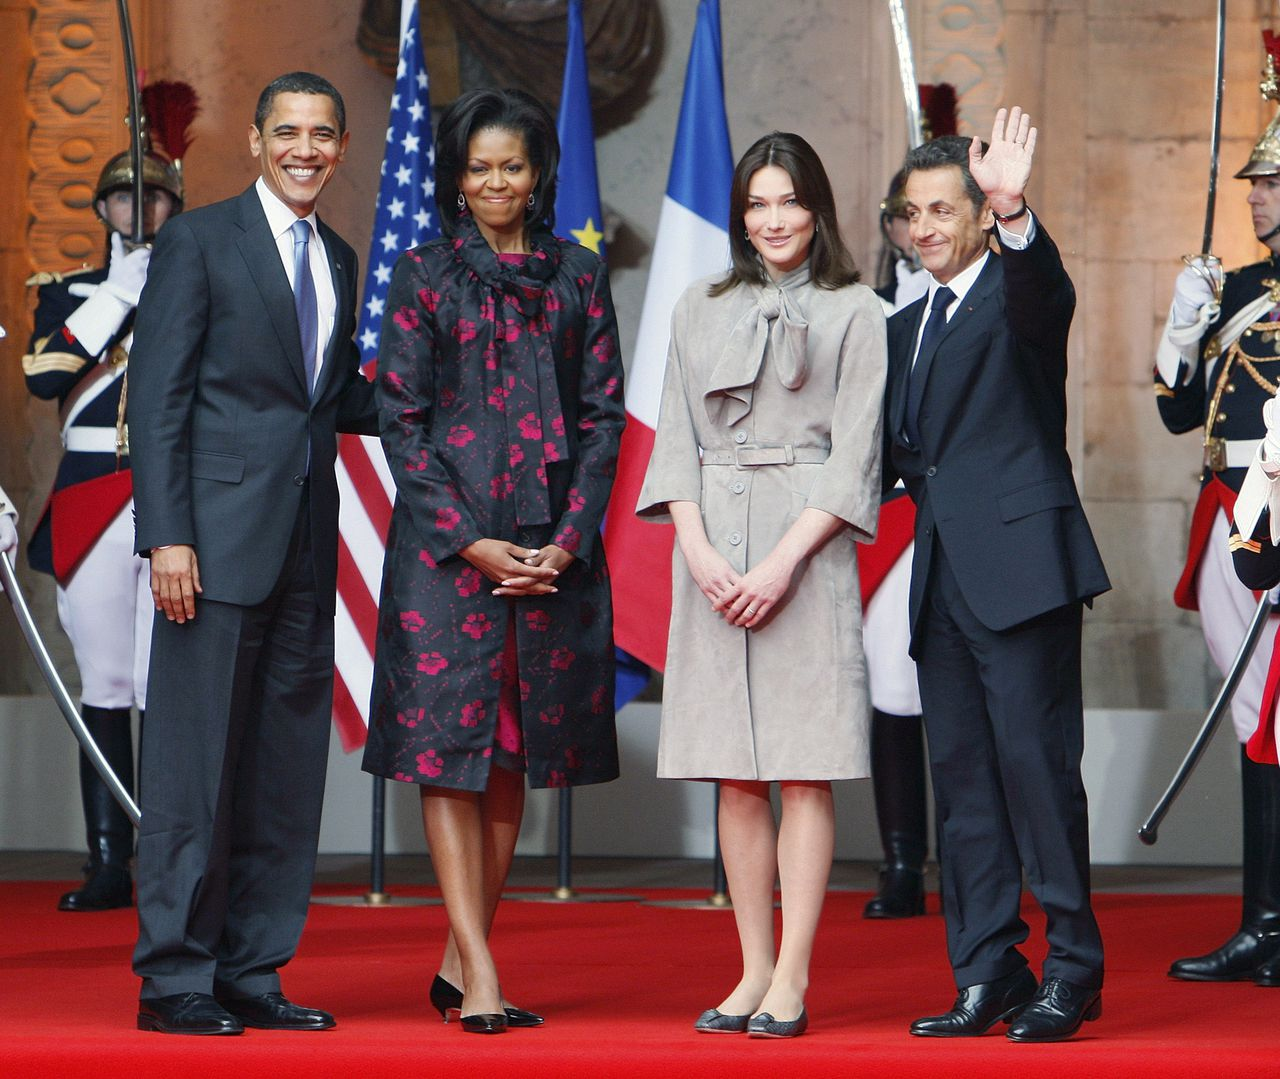 FILE - This April 3, 2009 file photo, shows President Barack Obama and first lady Michelle Obama greeted by France's President Nicolas Sarkozy and wife Carla Bruni-Sarkozy at Palais Rohan in Strasbourg. French President Nicolas Sarkozy announced Wednesday that he will seek a second term despite years of low popularity ratings, pledging to boost its lagging economy and protect France's way of life. (AP Photo/Charles Dharapak/File)